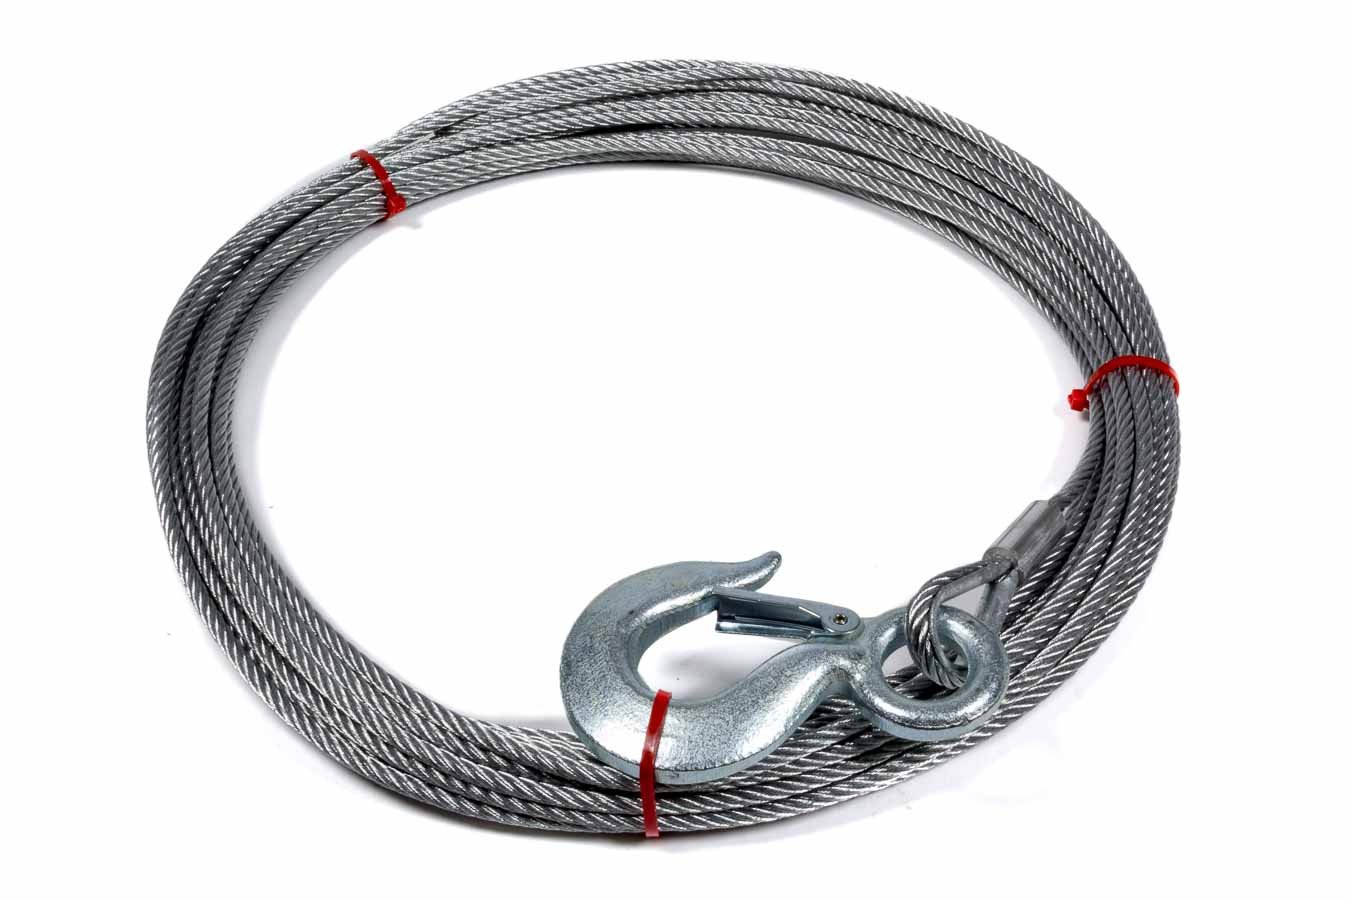 Superwinch 1514A Wire Rope assembly with Hook 7/32'' X 60' - replacement wire rope for S4000